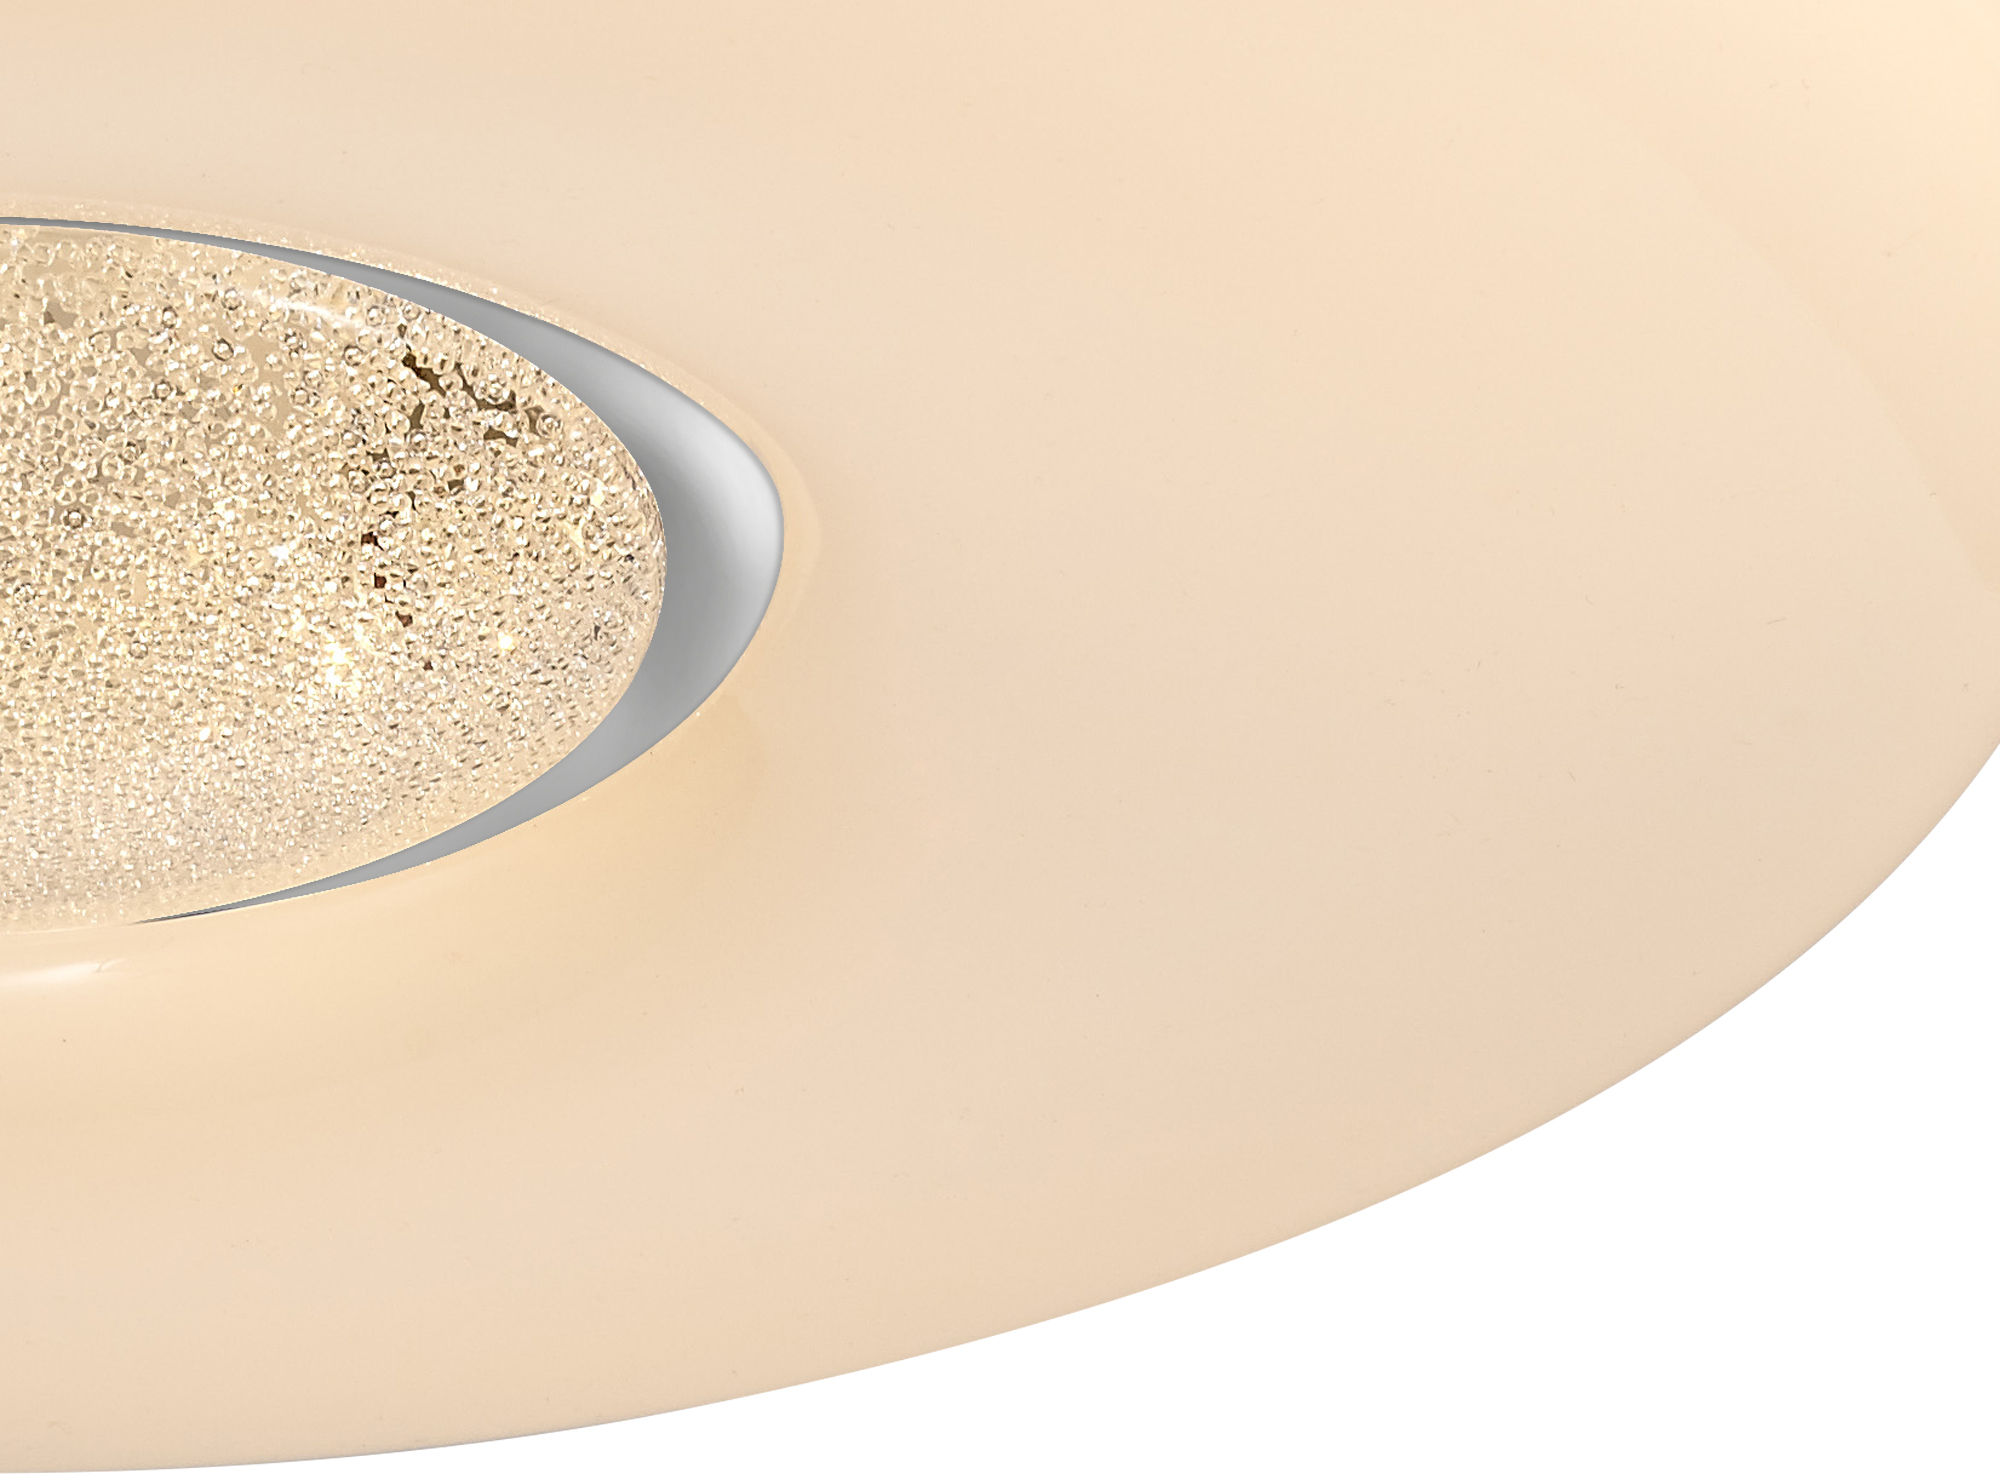 Ceiling, 1 x 24W LED, CCT Switchable 3000/4000/6000K, 2032lm, Opal White, 3yrs Warranty